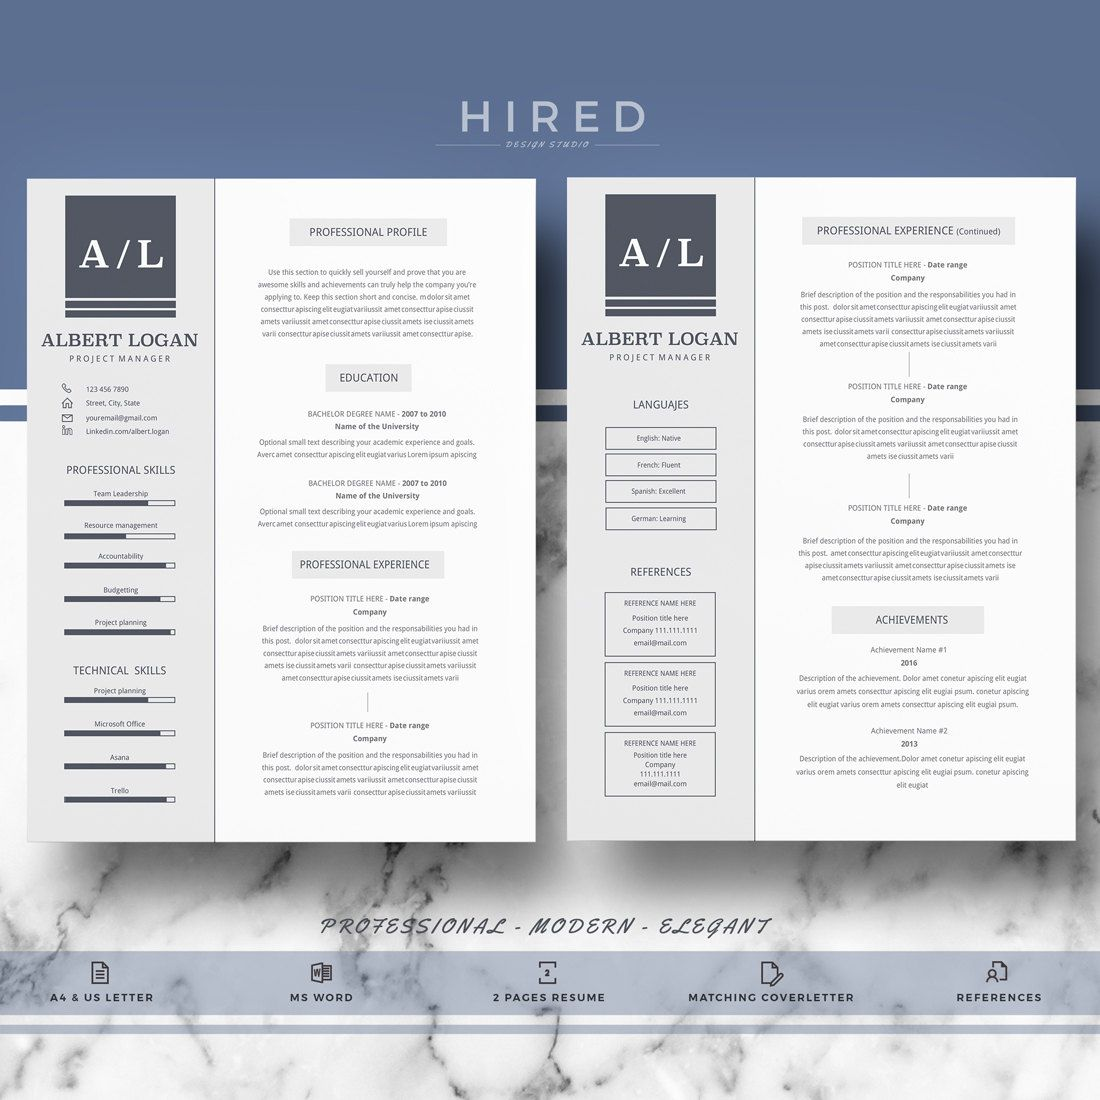 Professional Resume Template; Modern Resume, CV templates for Word ...